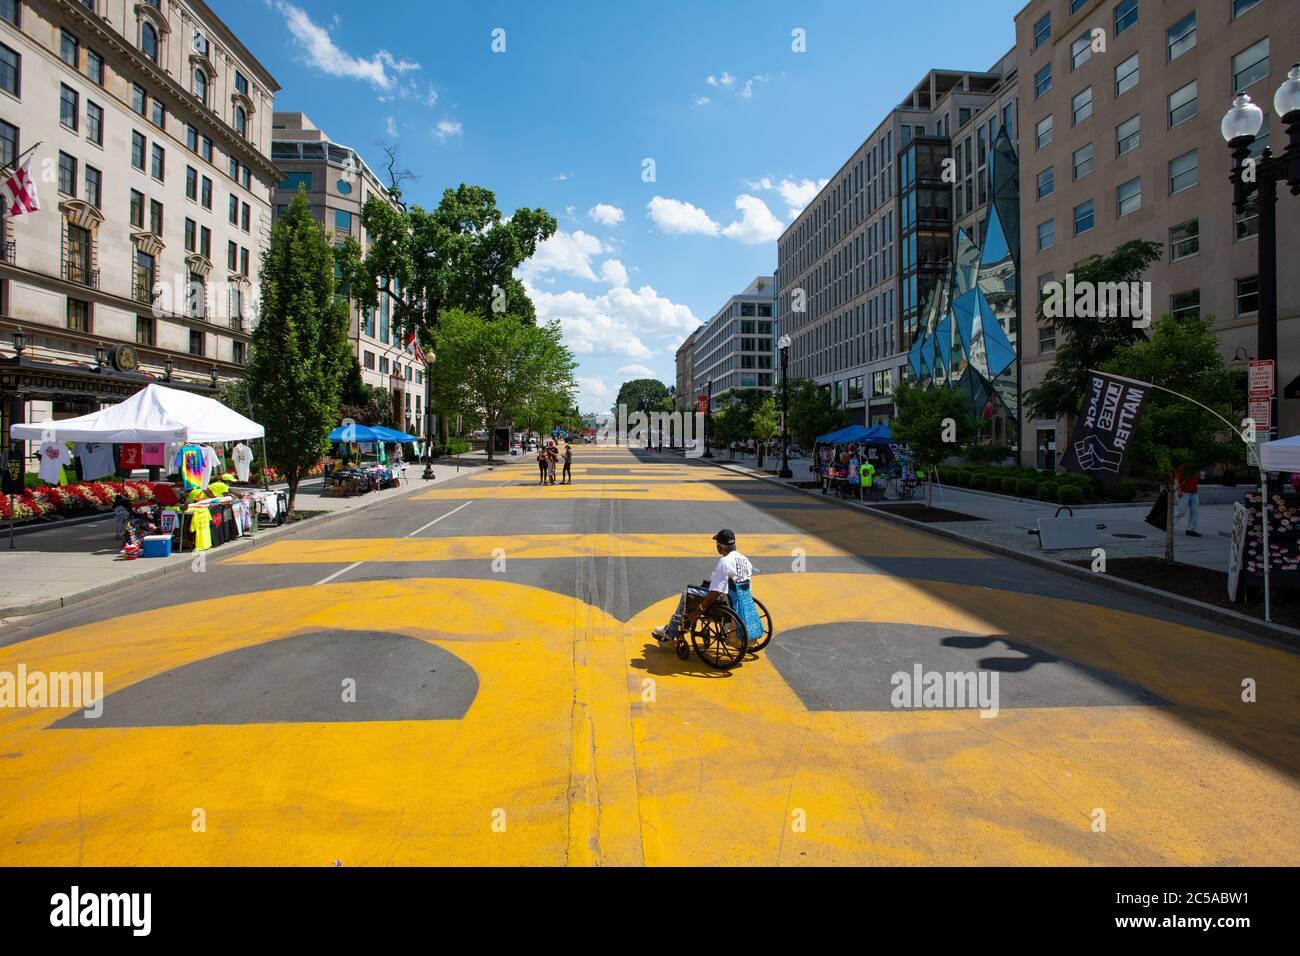 usa-washington-dc-black-lives-matter-plaza-on-16th-street-after-the-george-floyd-protests-for-racial-injustice-man-in-a-wheelchair-2C5ABW1.jpg